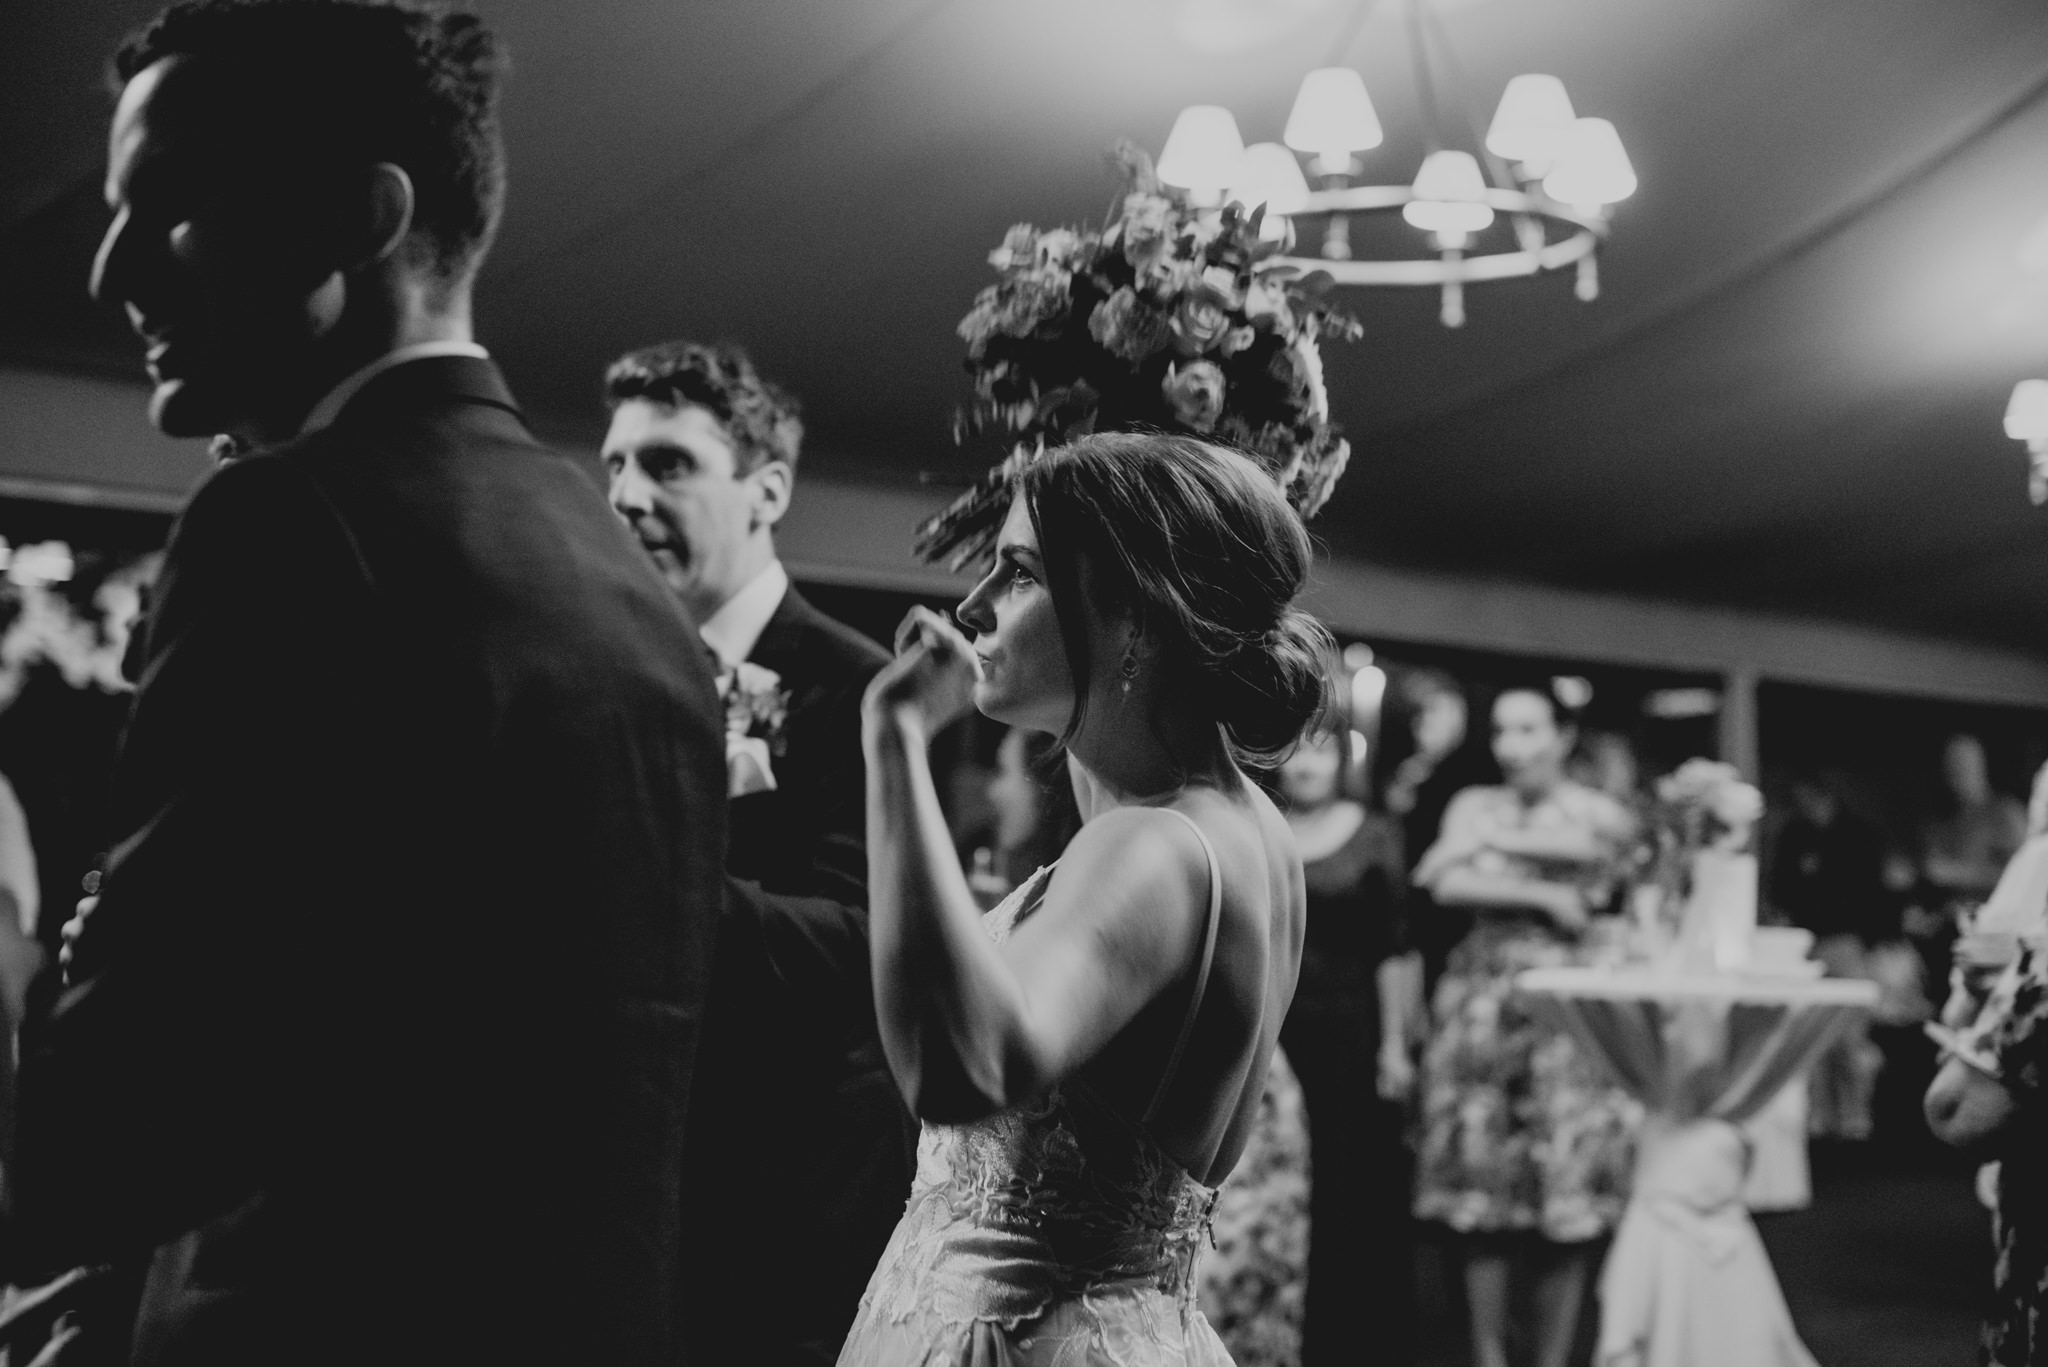 Bride dancing with bouquet in one hand